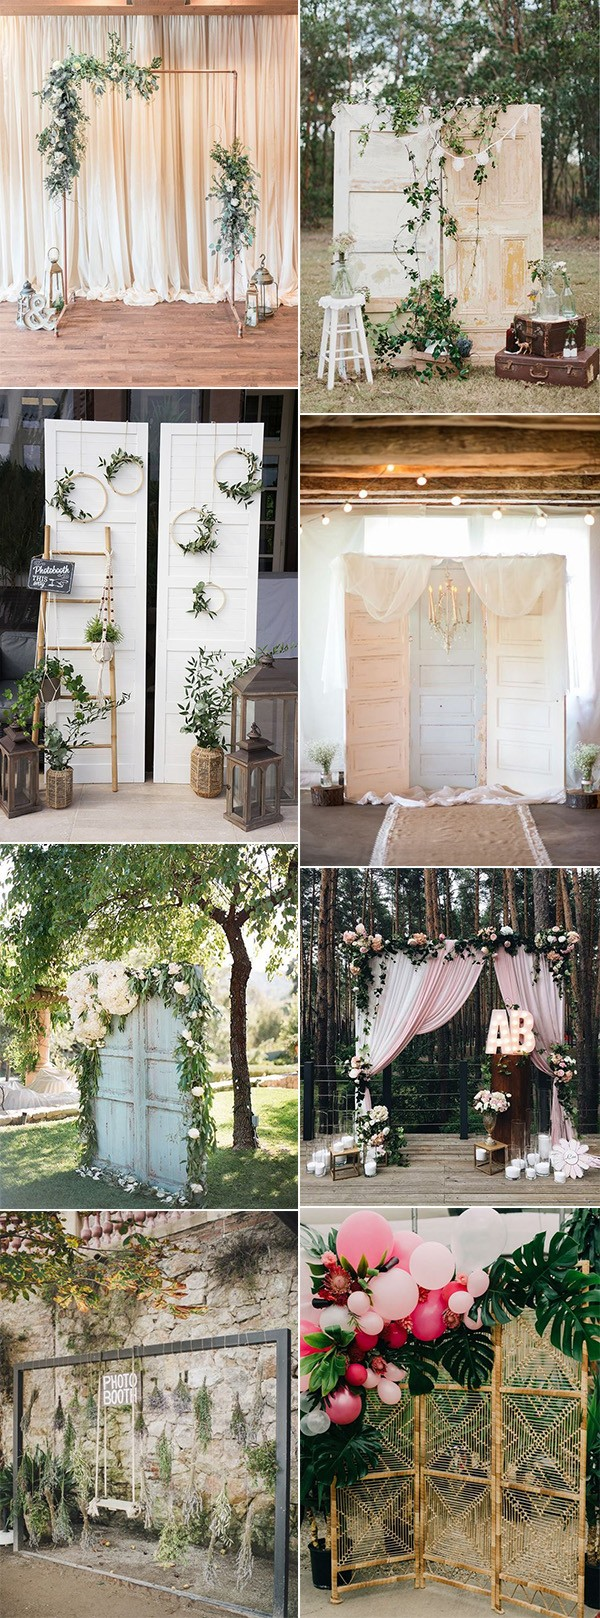 wedding photo booth backdrop ideas for 2019 trends